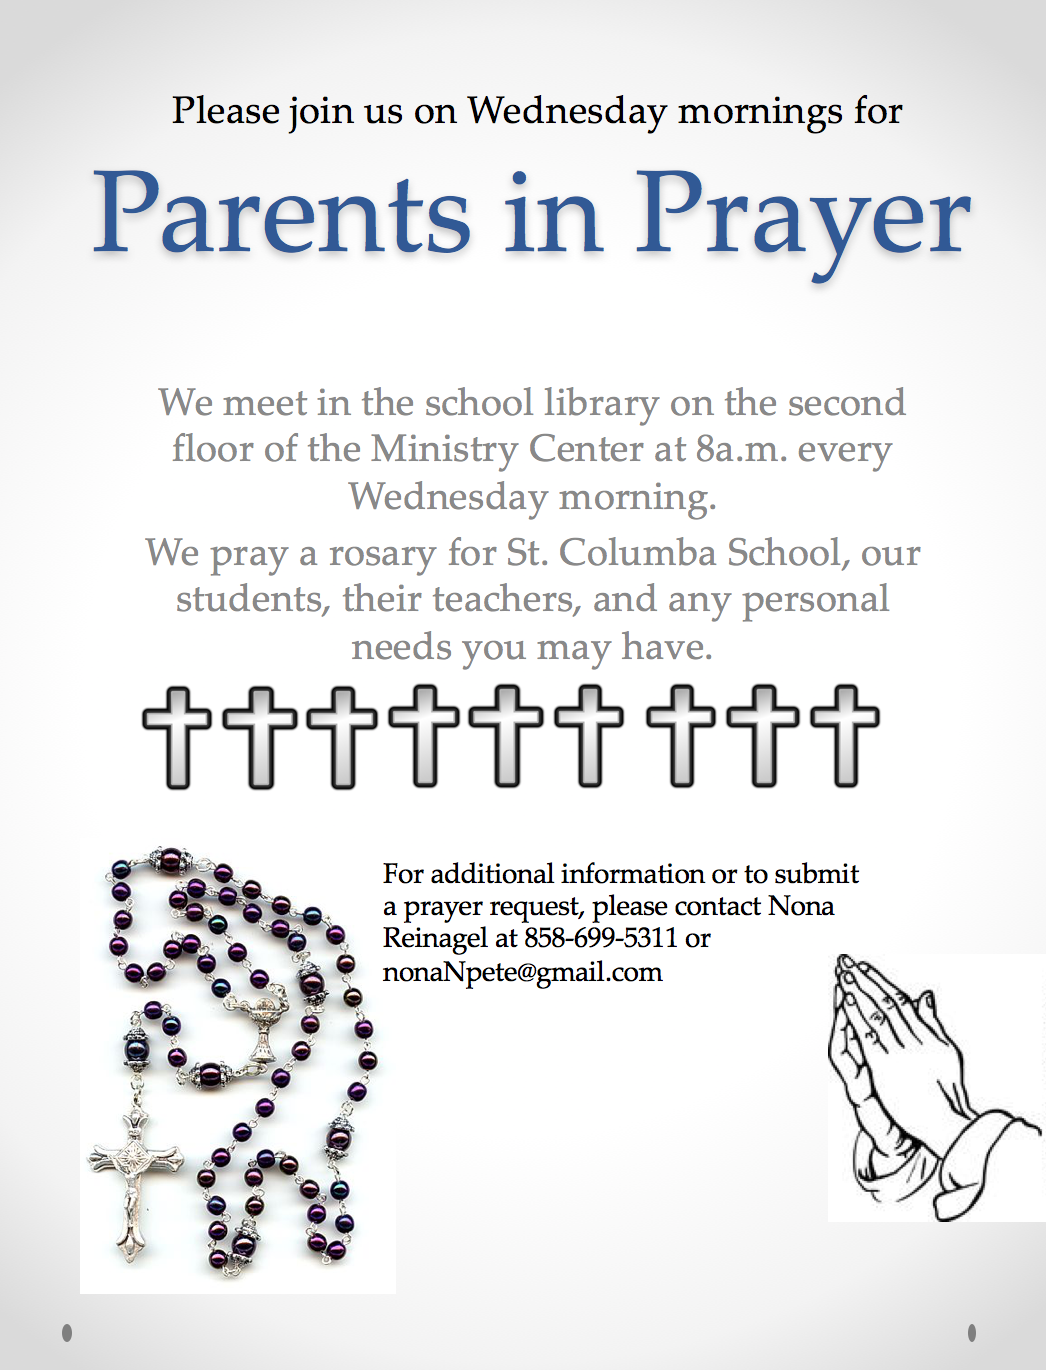 Parents in Prayer every Wednesday